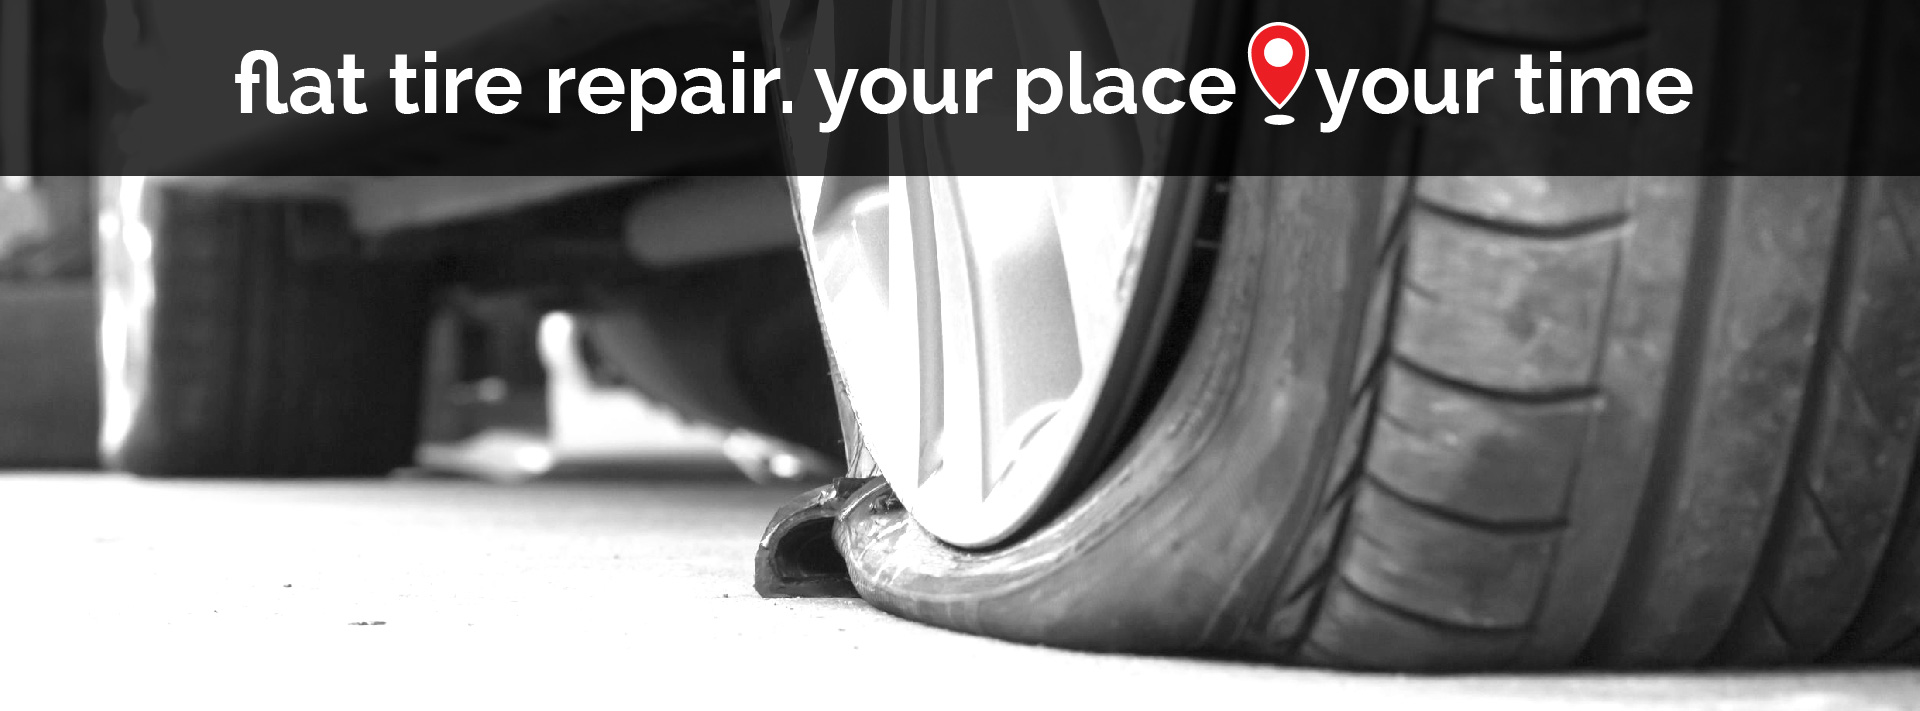 getTREAD mobile flat tire repair in Orlando, Lake Mary, Sanford, Heathrow, Altamonte Springs, Longwood